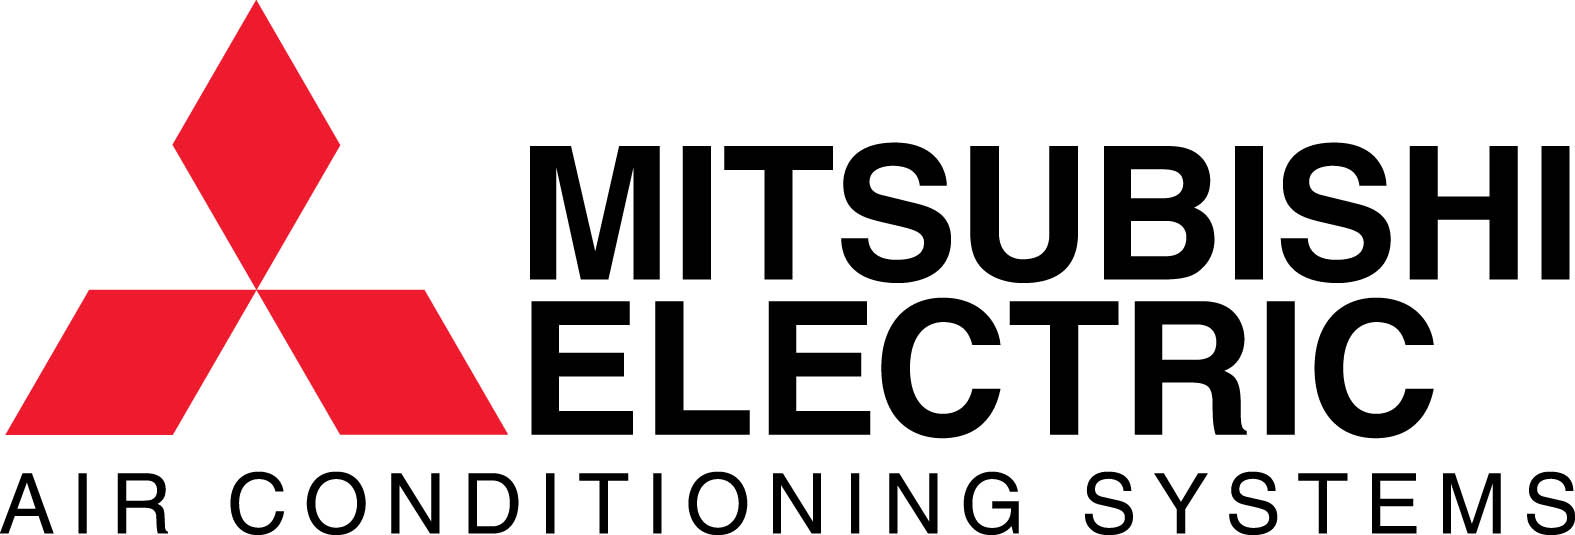 mitsubishi suppliers image